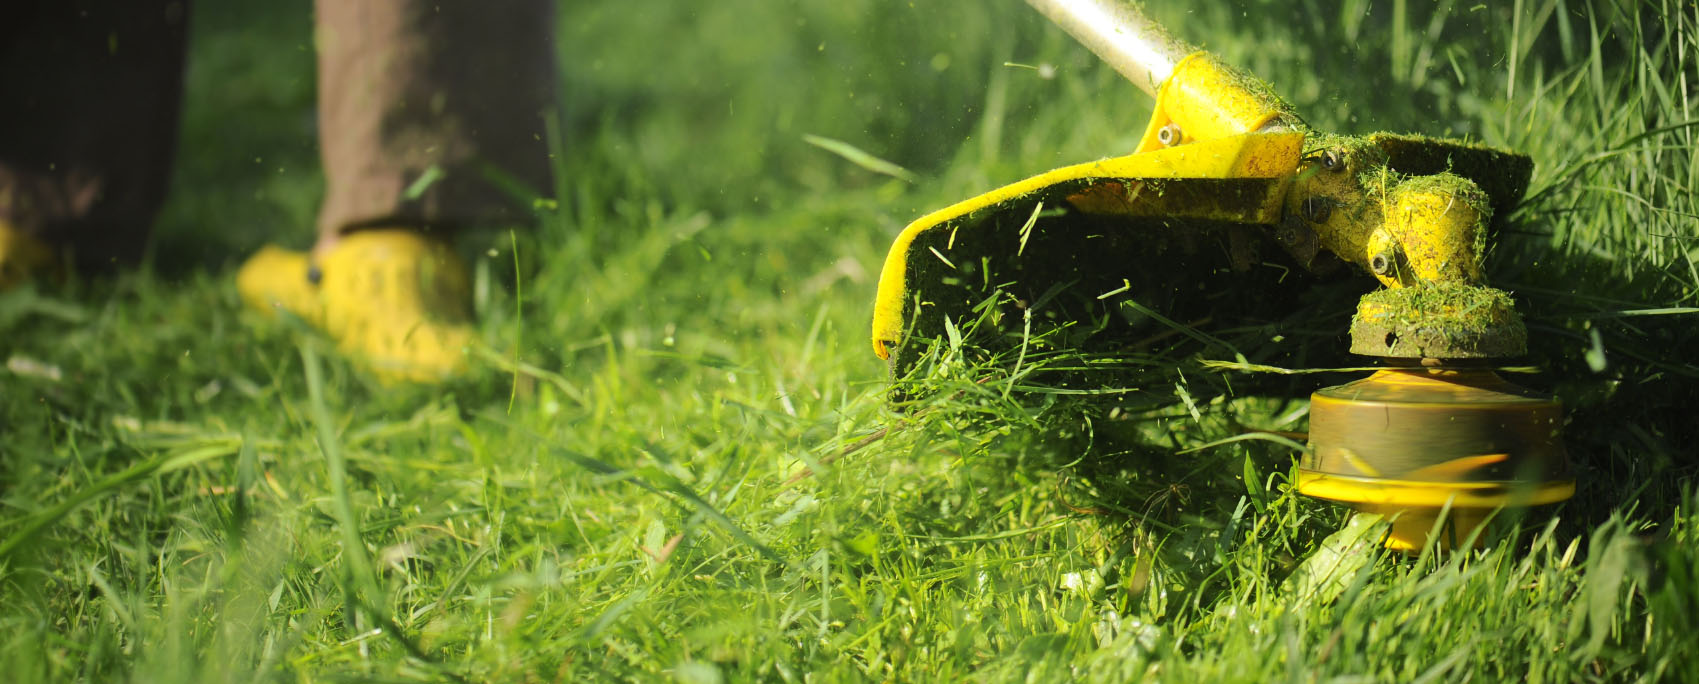 Commercial Landscape Maintenance In College Station Round